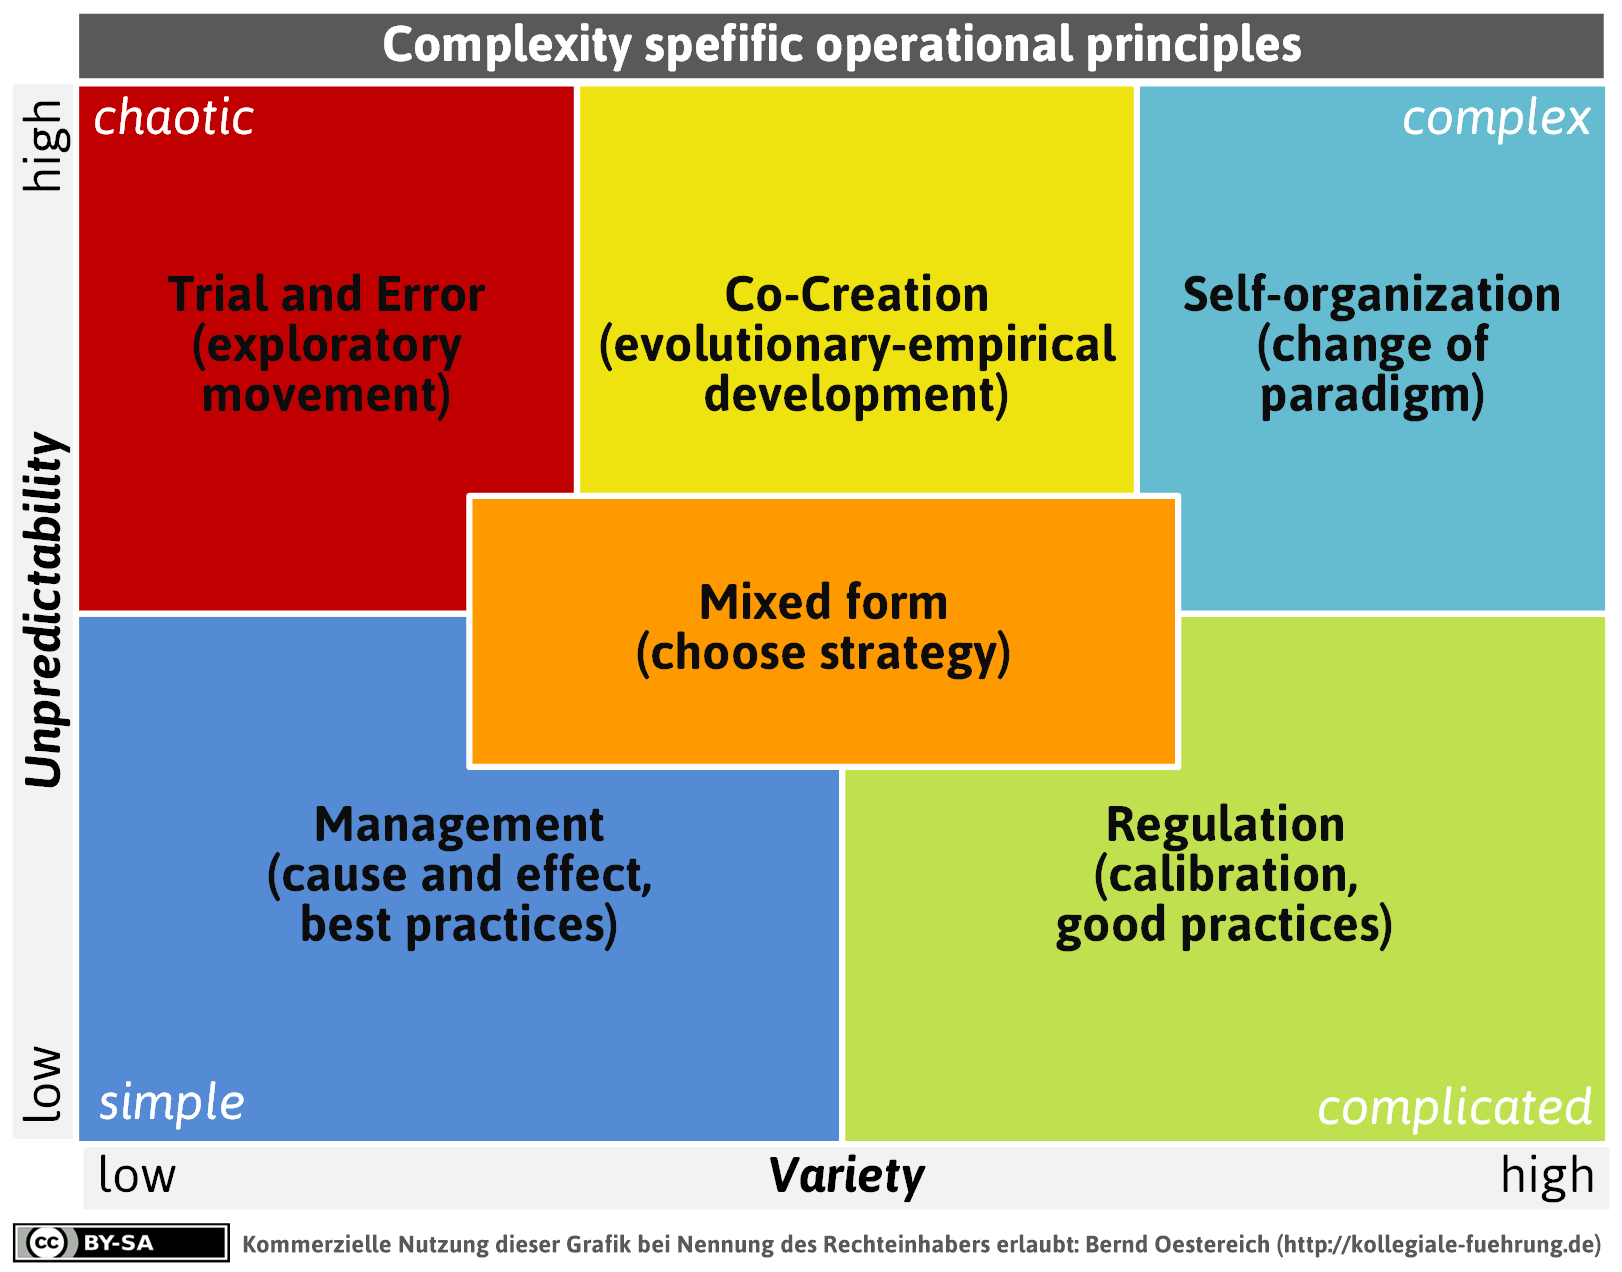 Complexity specific operational principles